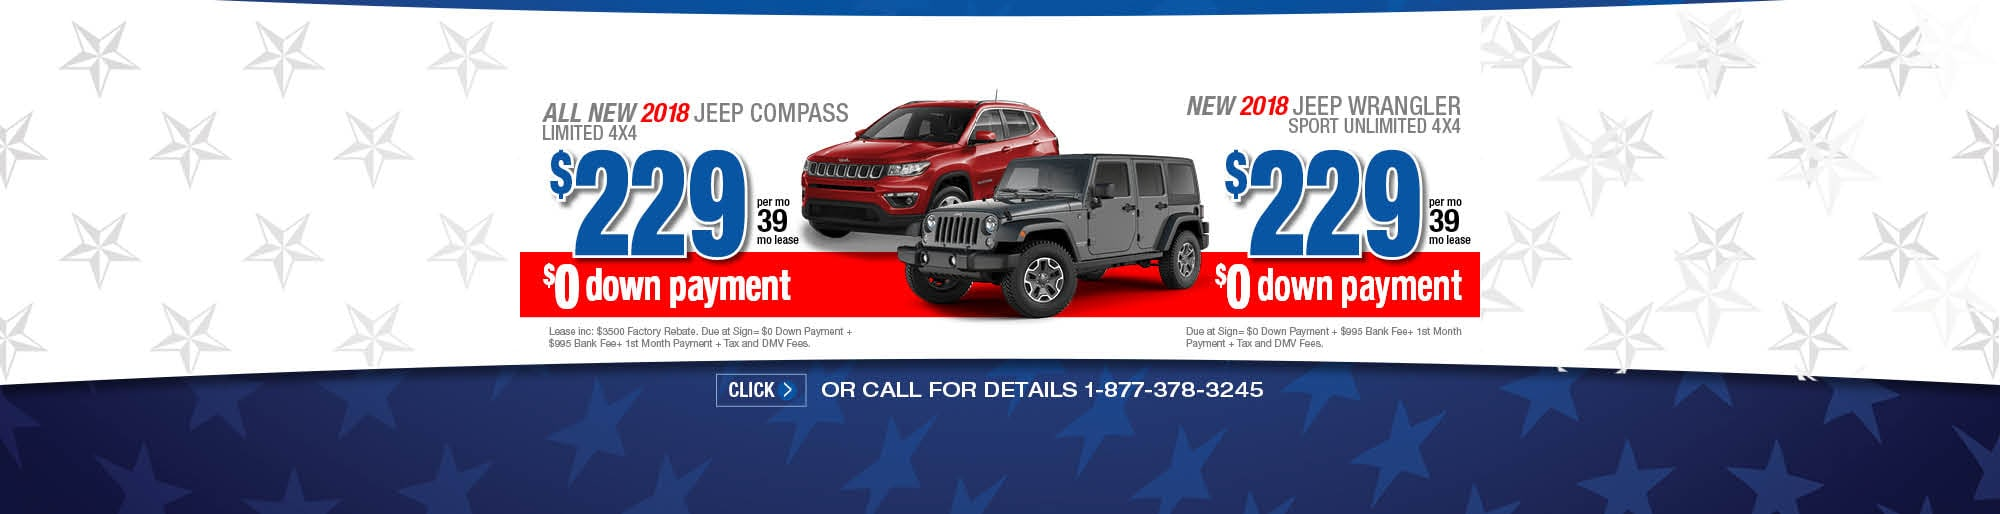 New Jeep Inventory Long Island Jeep Dealer Westbury Jeep - Chrysler dealer long island ny